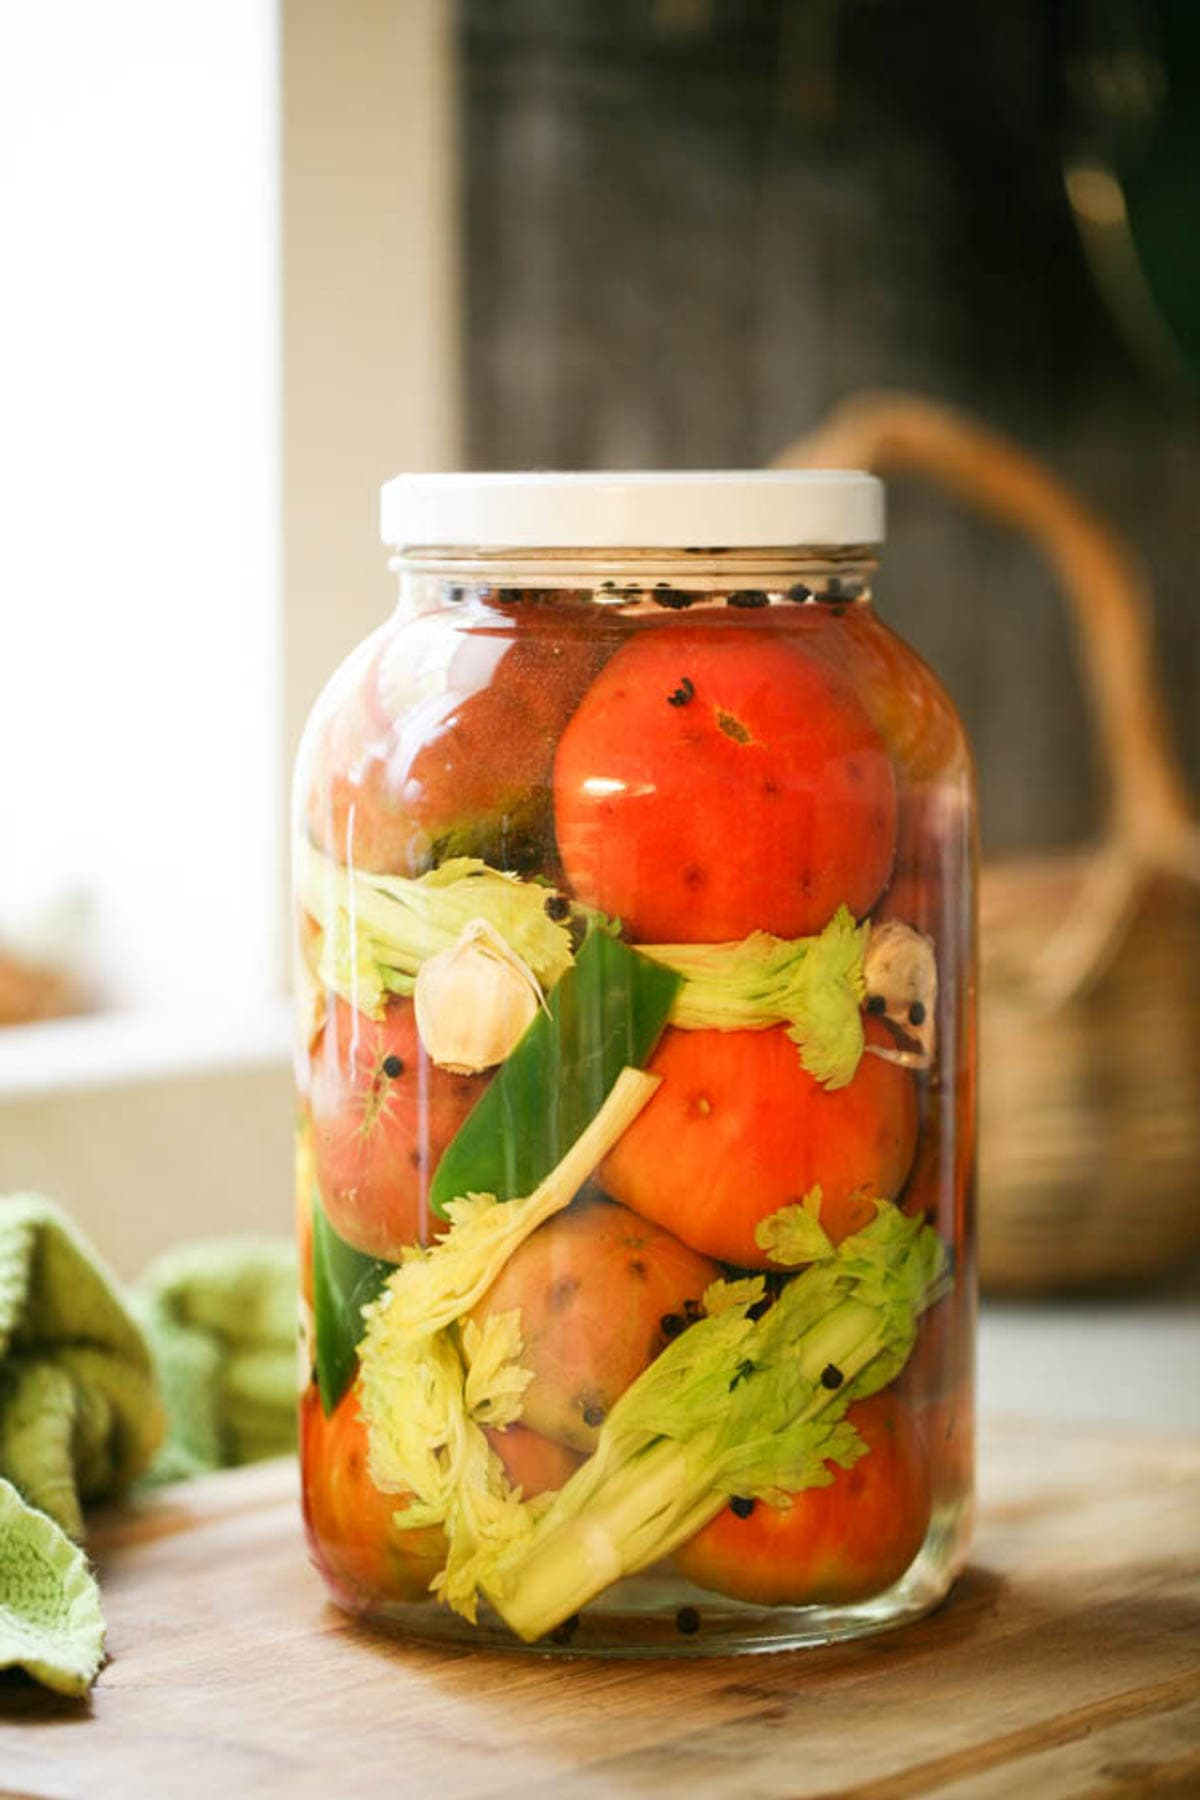 Fermenting tomatoes is a great way to preserve tomatoes without cooking them and it takes minutes to prepare a huge jar. Learn how to ferment tomatoes and use your fermented tomatoes as a side dish, in salads, or add them to sandwiches.